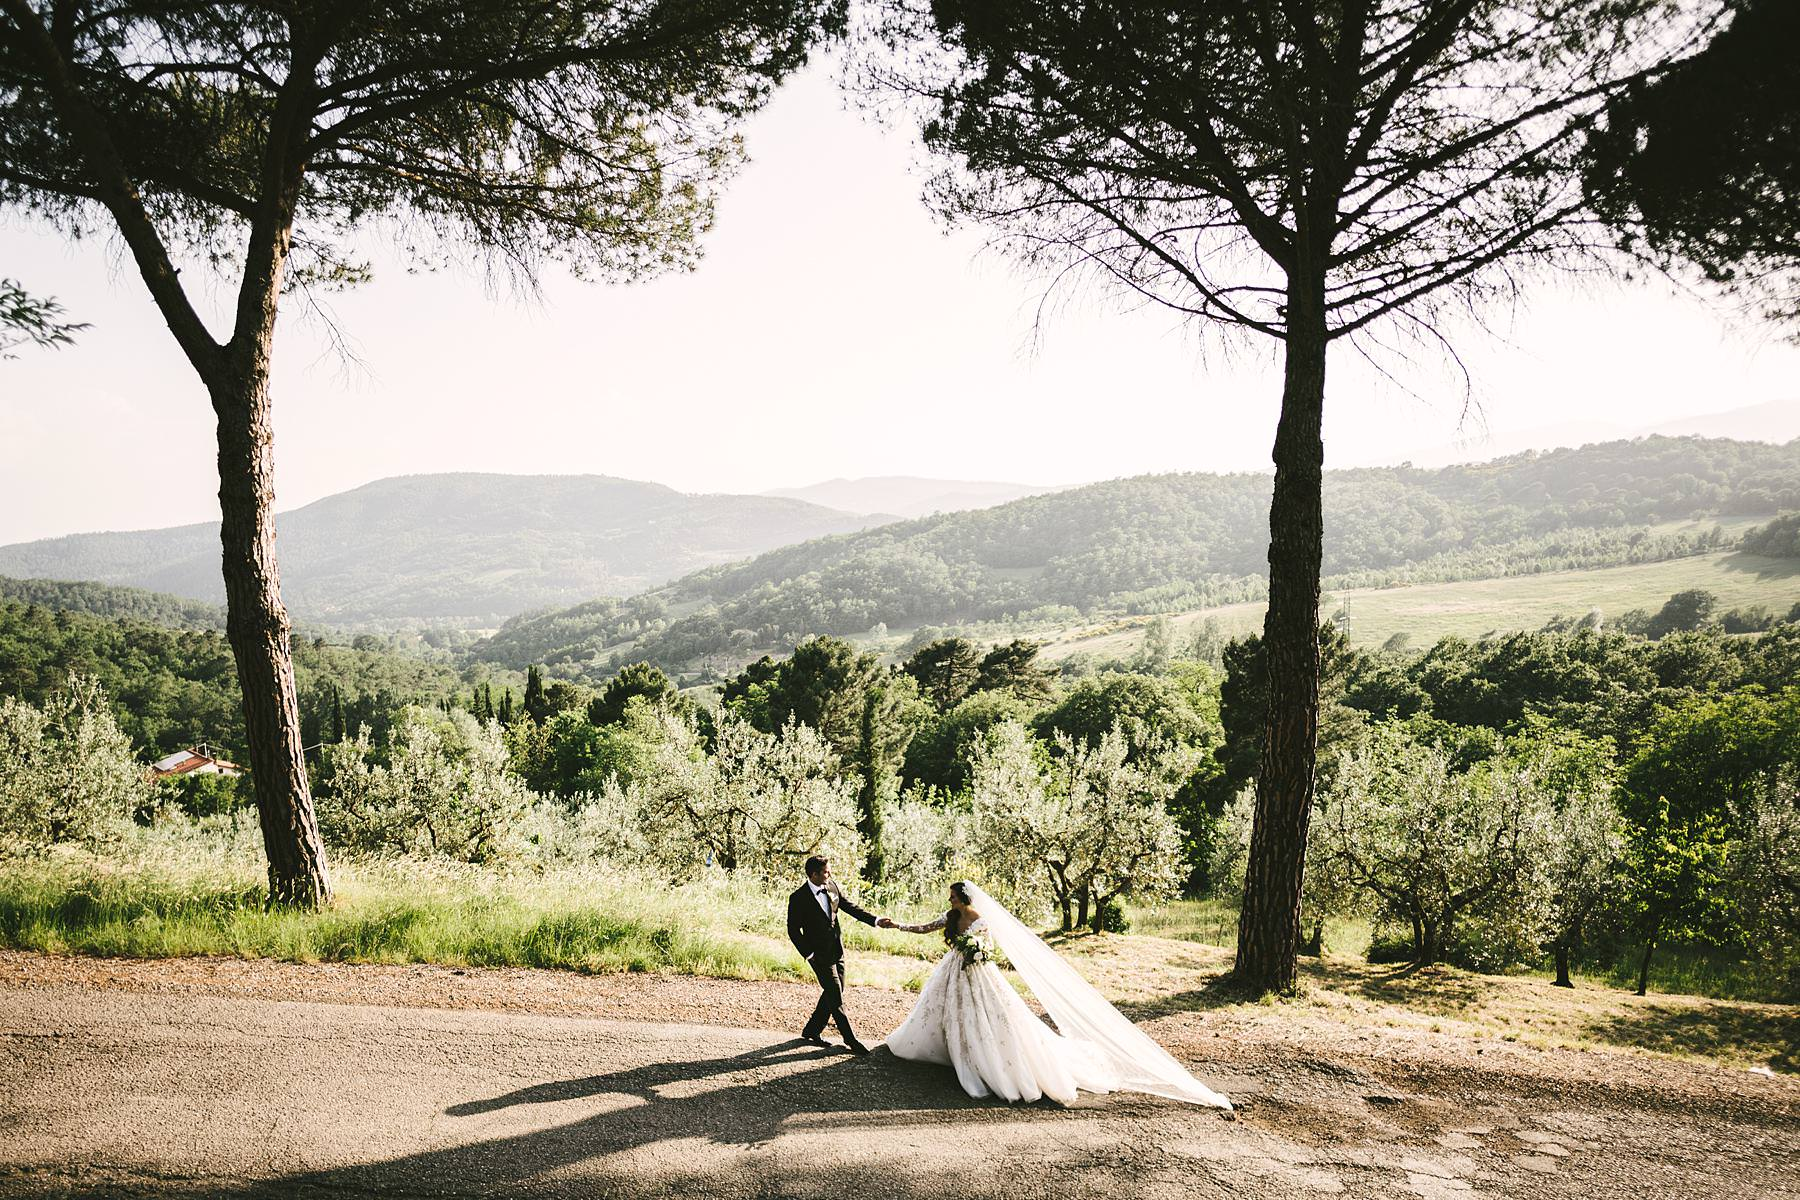 Rippling and sumptuous Tuscany countryside wedding in the elegant Castle of Valenzano. Unforgettable and romantic bride and groom portrait near Valenzano Castle. Castle destination wedding in Italy